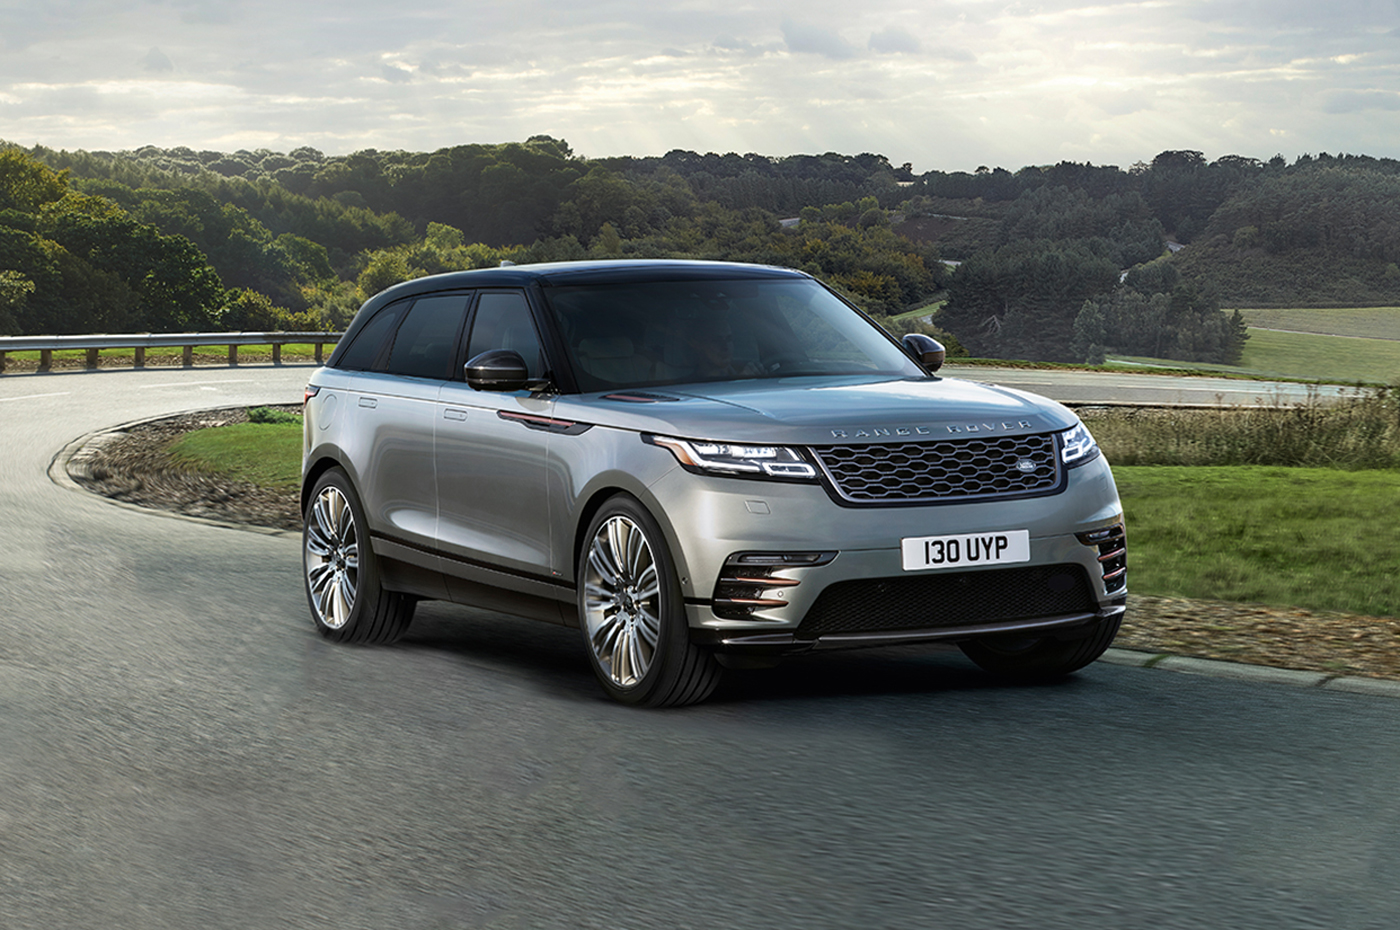 Range Rover Velar for rent